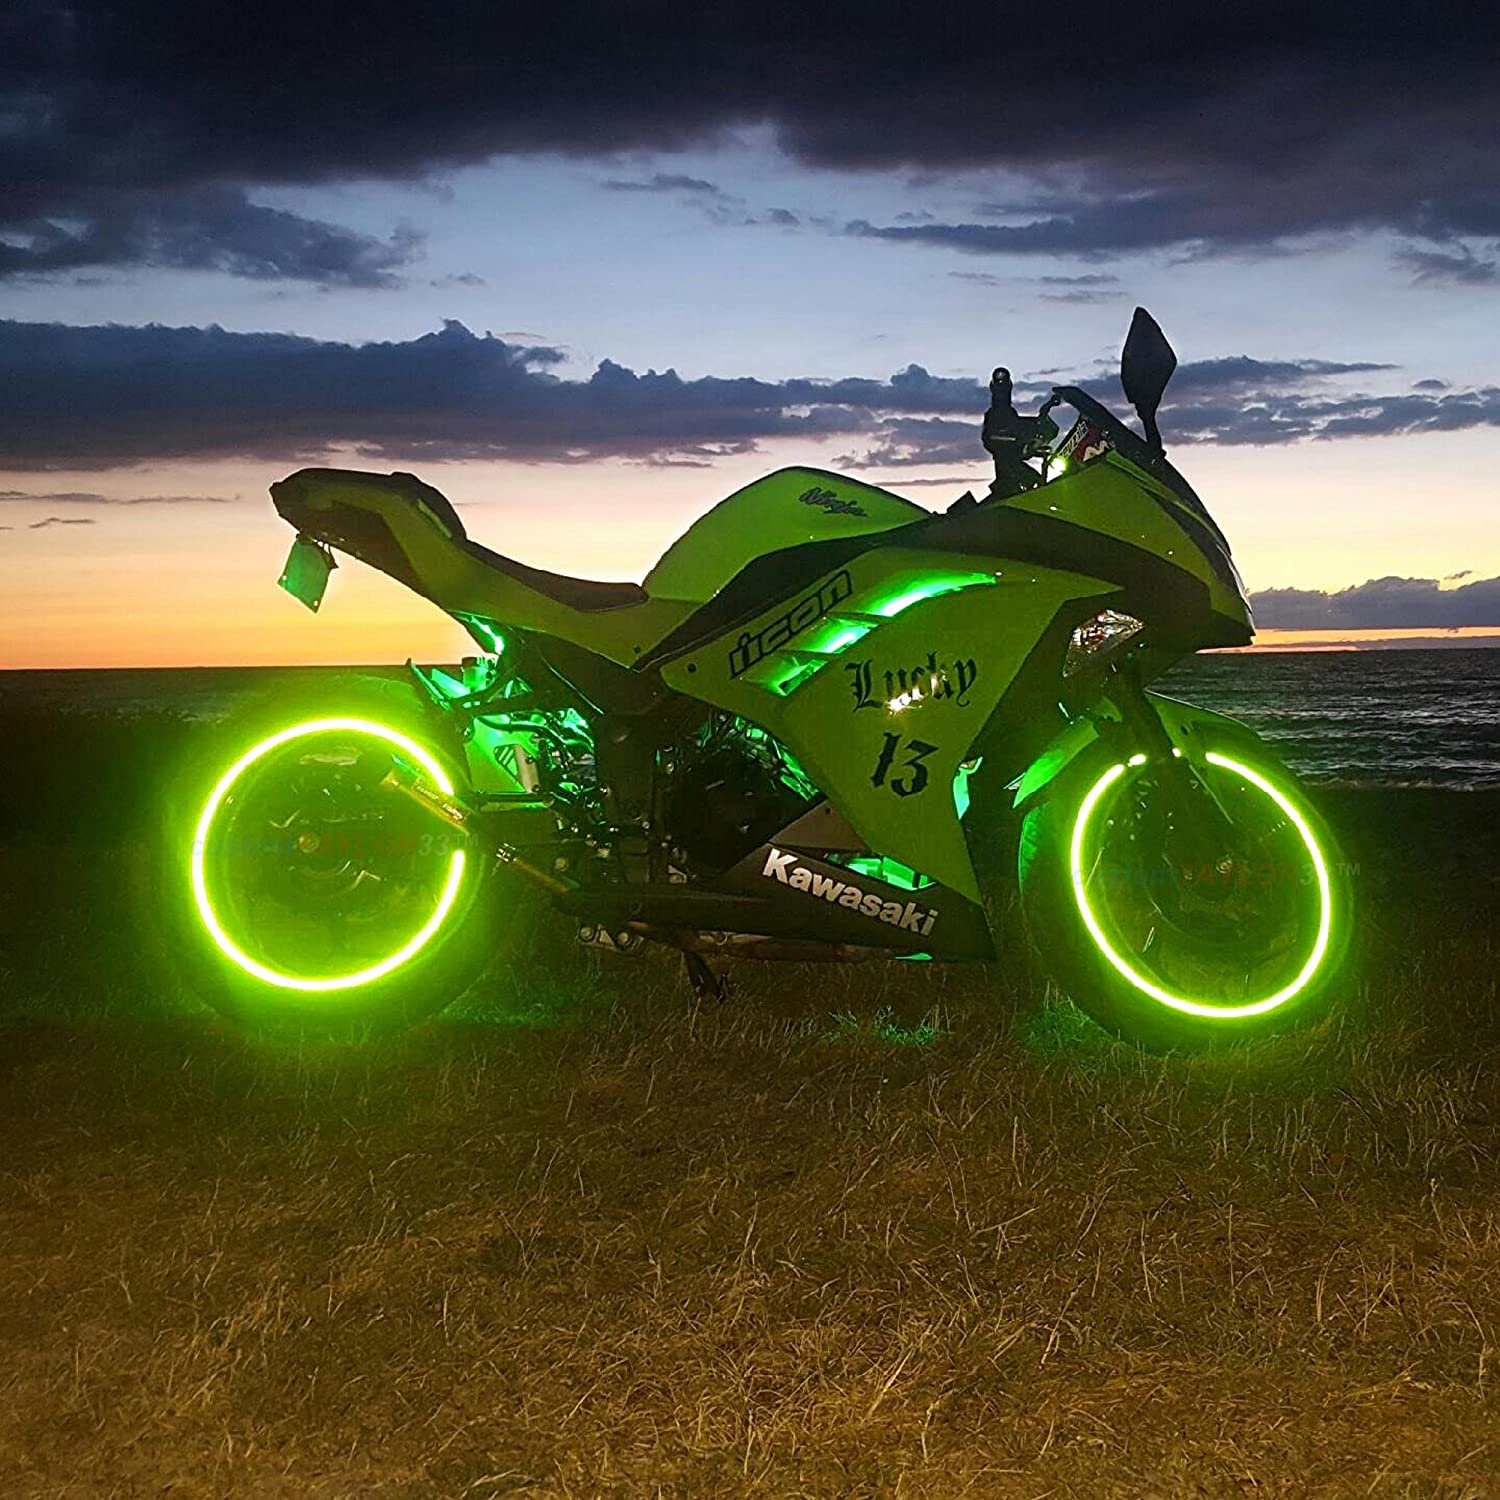 Combination Rim Size customTAYLOR33 New Special Edition Lime Green High Intensity Grade Reflective Copyrighted Safety Rim Tapes 17//18